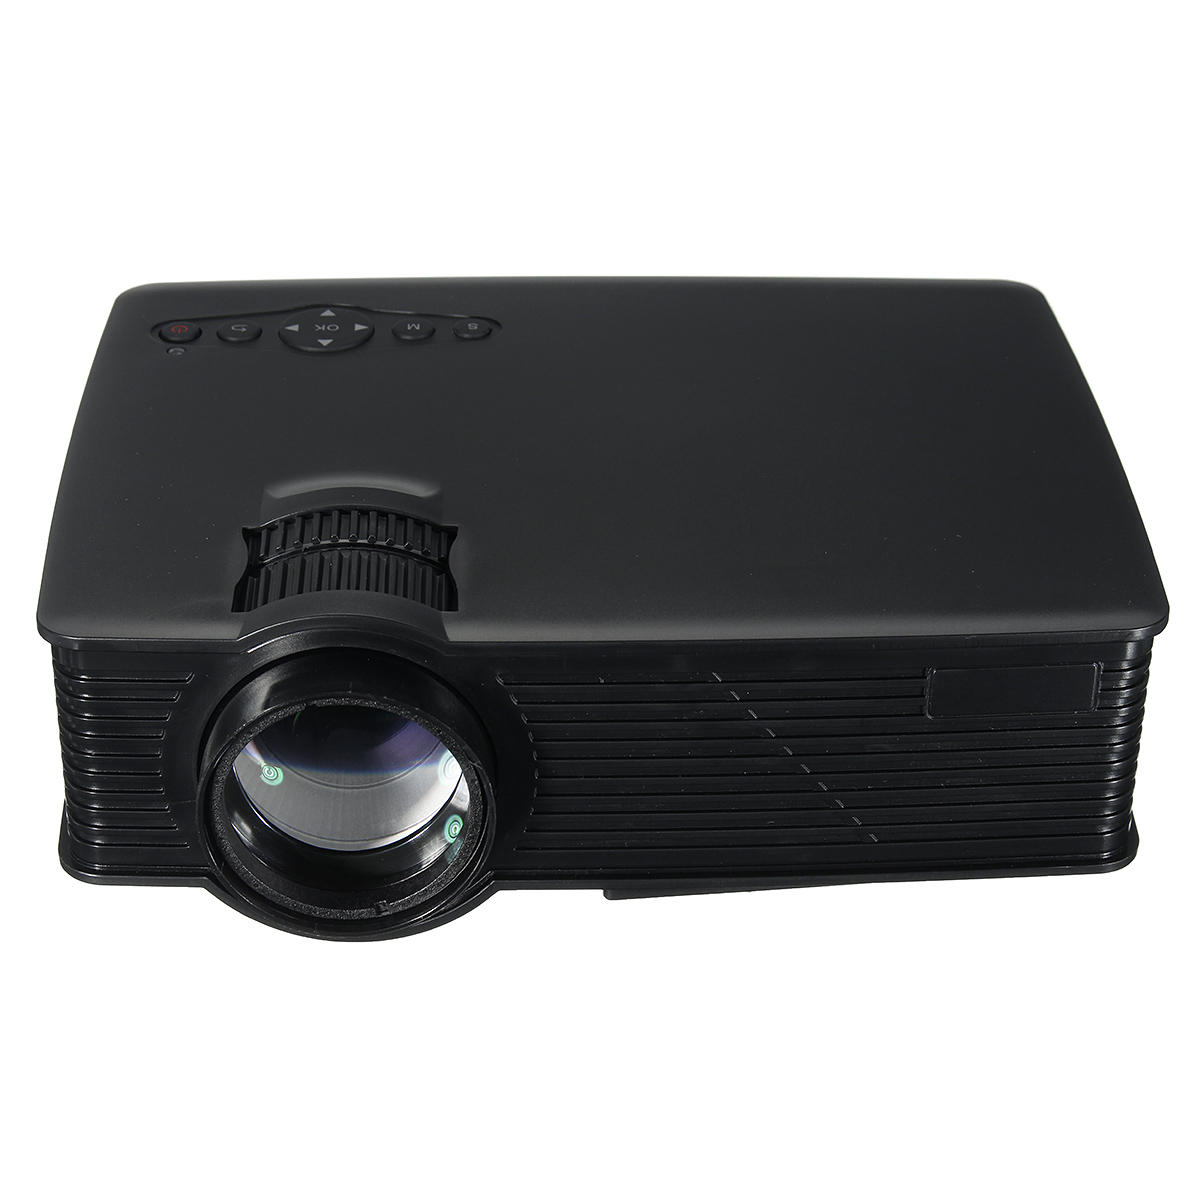 260 Multimedia 3000 Lumens Hd Led Projector Home Theater: Thinyou Gp-9 Portable 3000 Lumens Hd 1080p 3d Multimedia